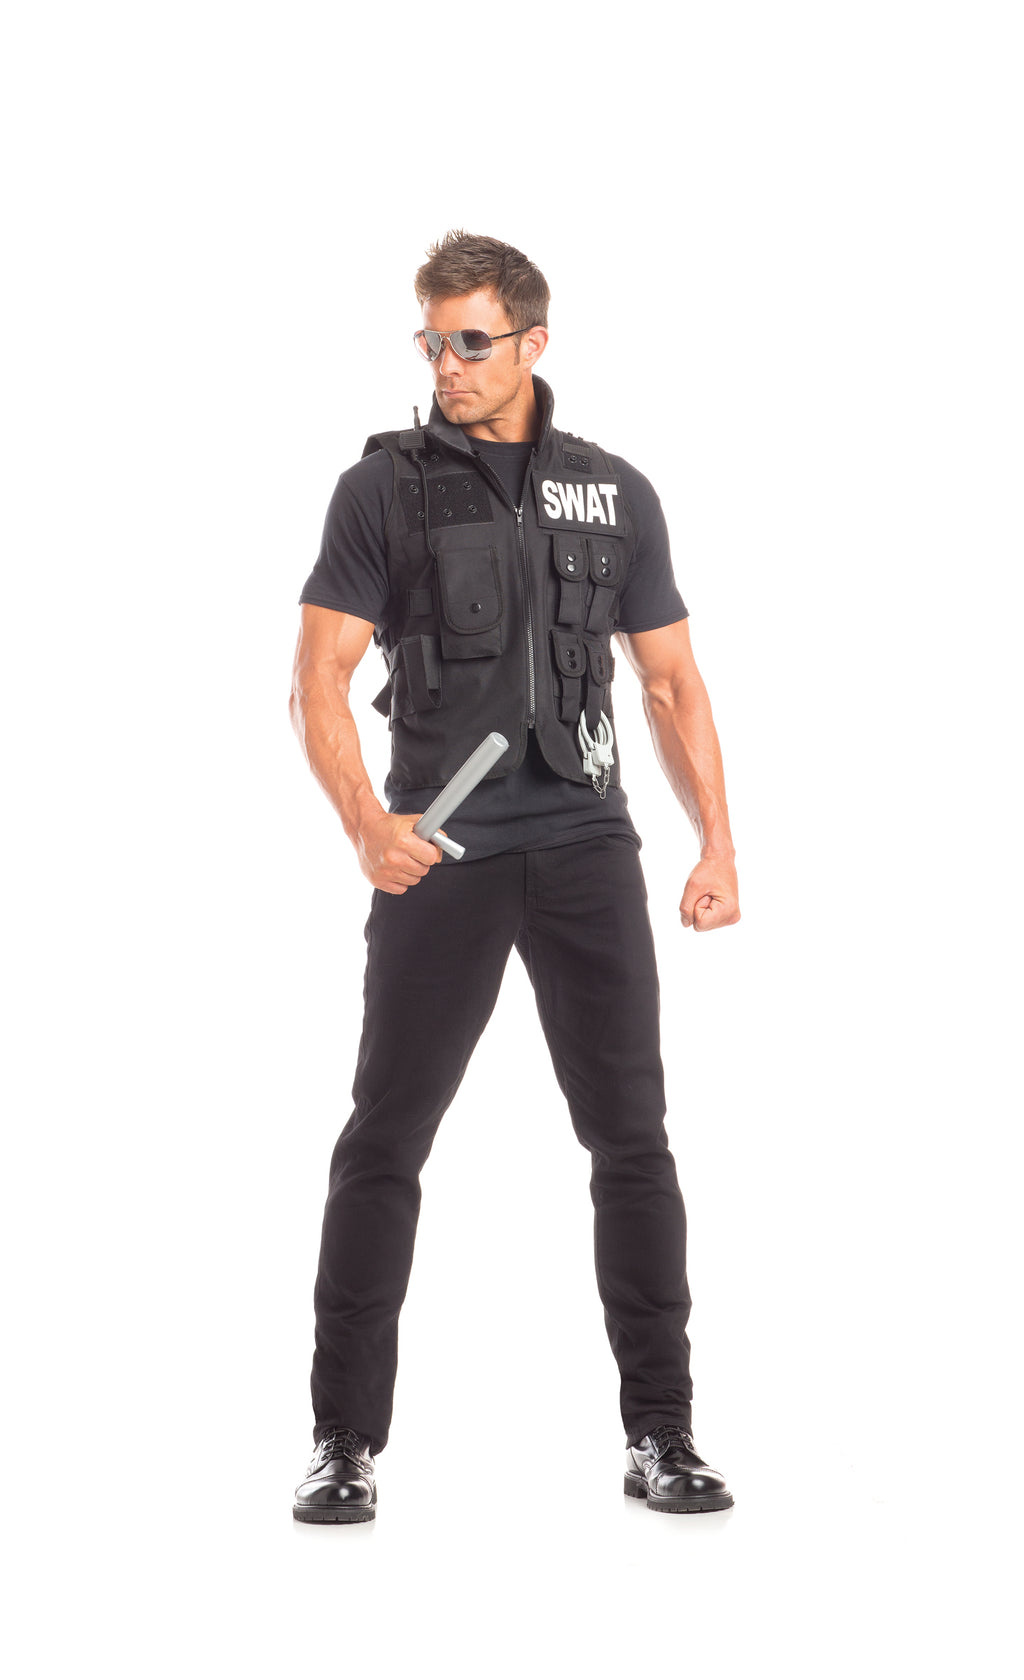 Adult-Men's-2-Piece-SWAT-Man-Halloween-Party-Costume